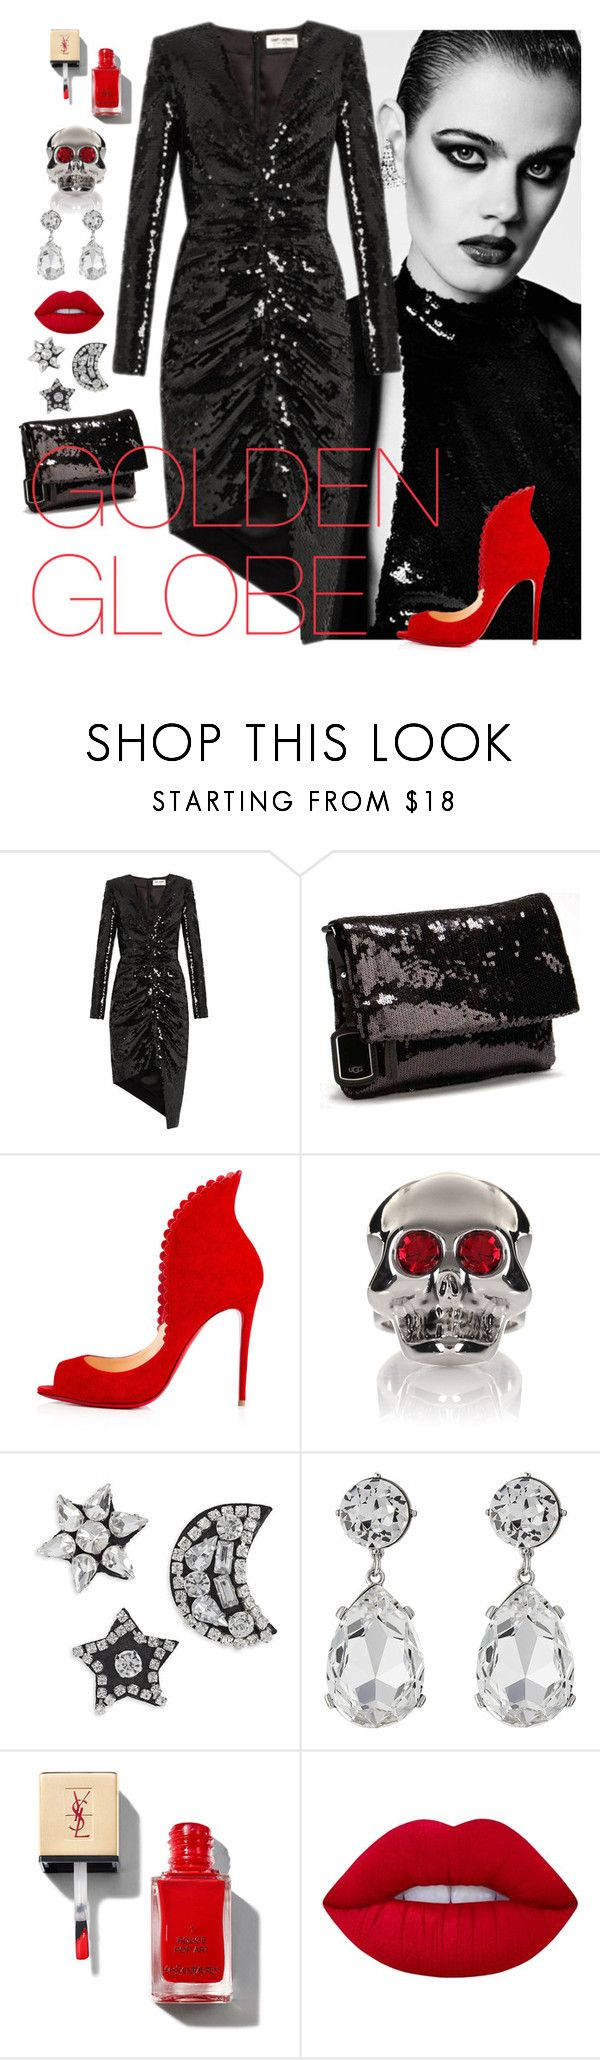 """""""Red carpet"""" by sonitsa ❤ liked on Polyvore featuring Yves Saint Laurent, UGG Australia, Moschino, Kenneth Jay Lane and Lime Crime"""